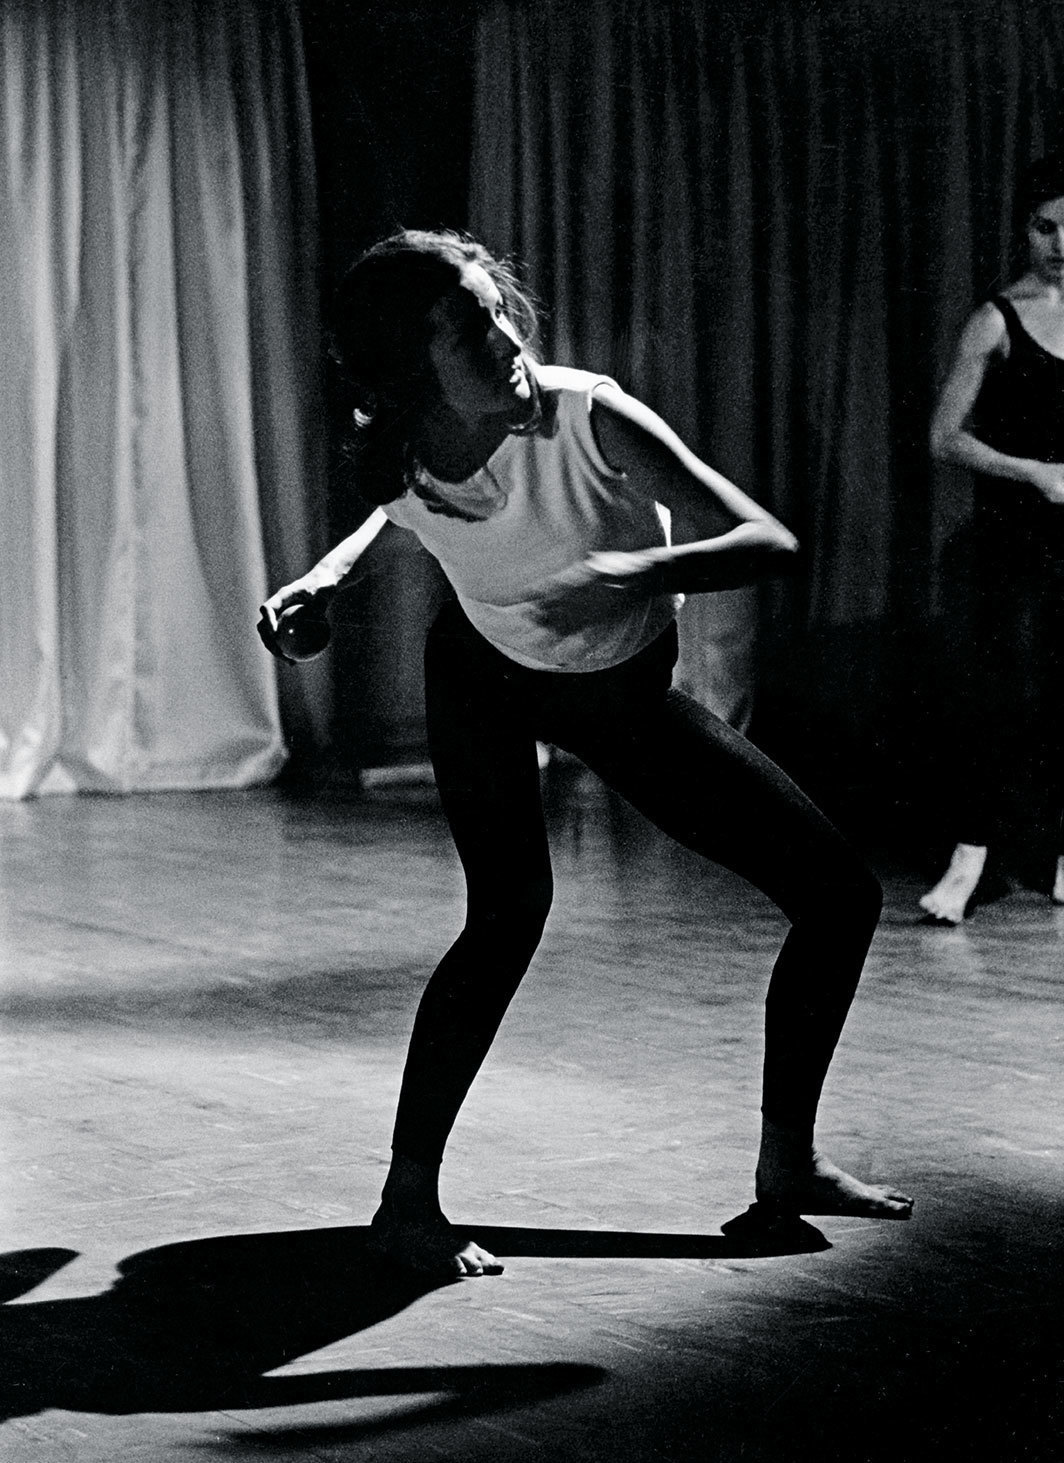 Yvonne Rainer, Terrain, 1963. Performance view, Judson Memorial Church, New York, April 28, 1963. Trisha Brown. Photo: Al Giese.